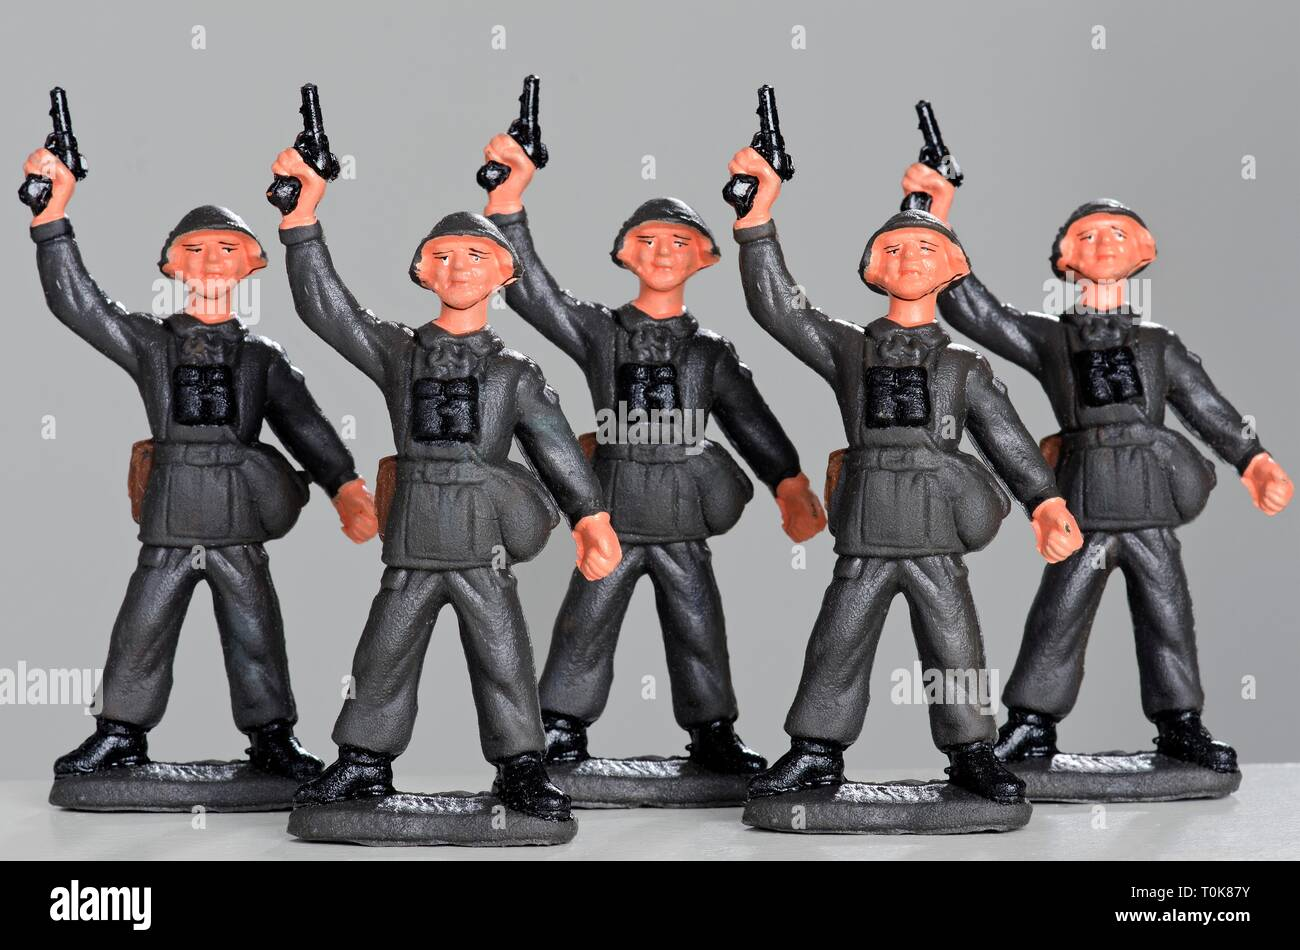 toys, toy figures, guarding soldiers of the National People's Army, made by VEB Spielzeugland Meng.-Hämm., Werk Effelder, East-Germany, circa 1987, Additional-Rights-Clearance-Info-Not-Available - Stock Image